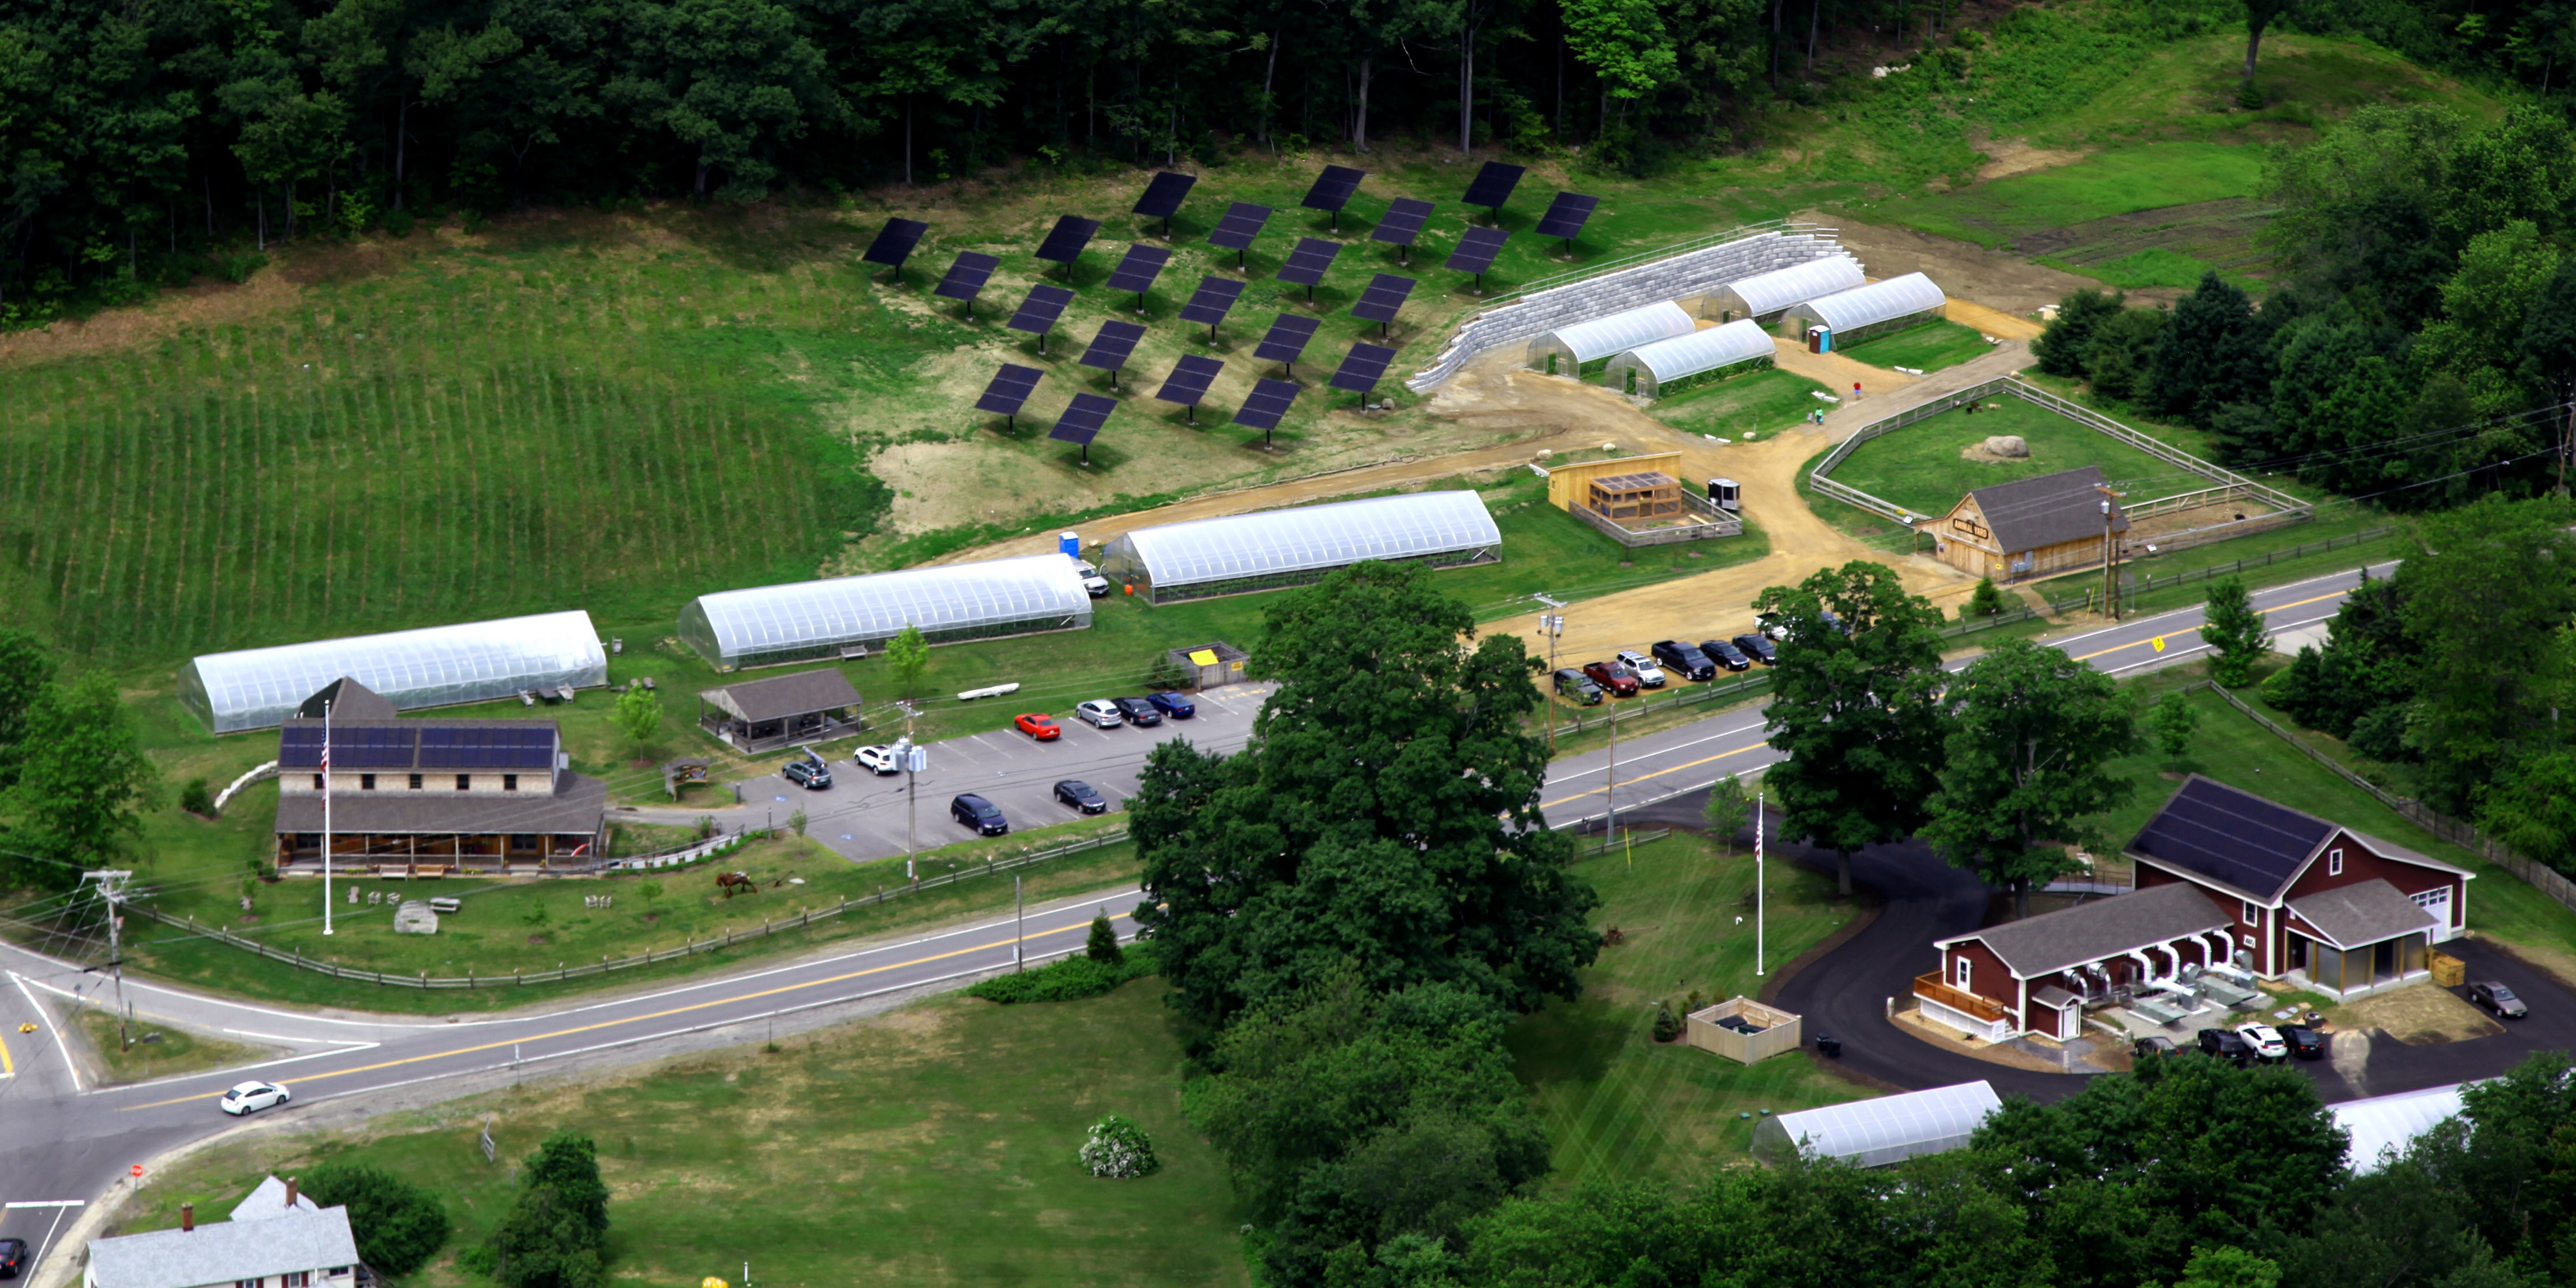 An aerial view of The Farm at Eastman's Corner and all of its solar arrays. Image © Farm at Eastman's Corner